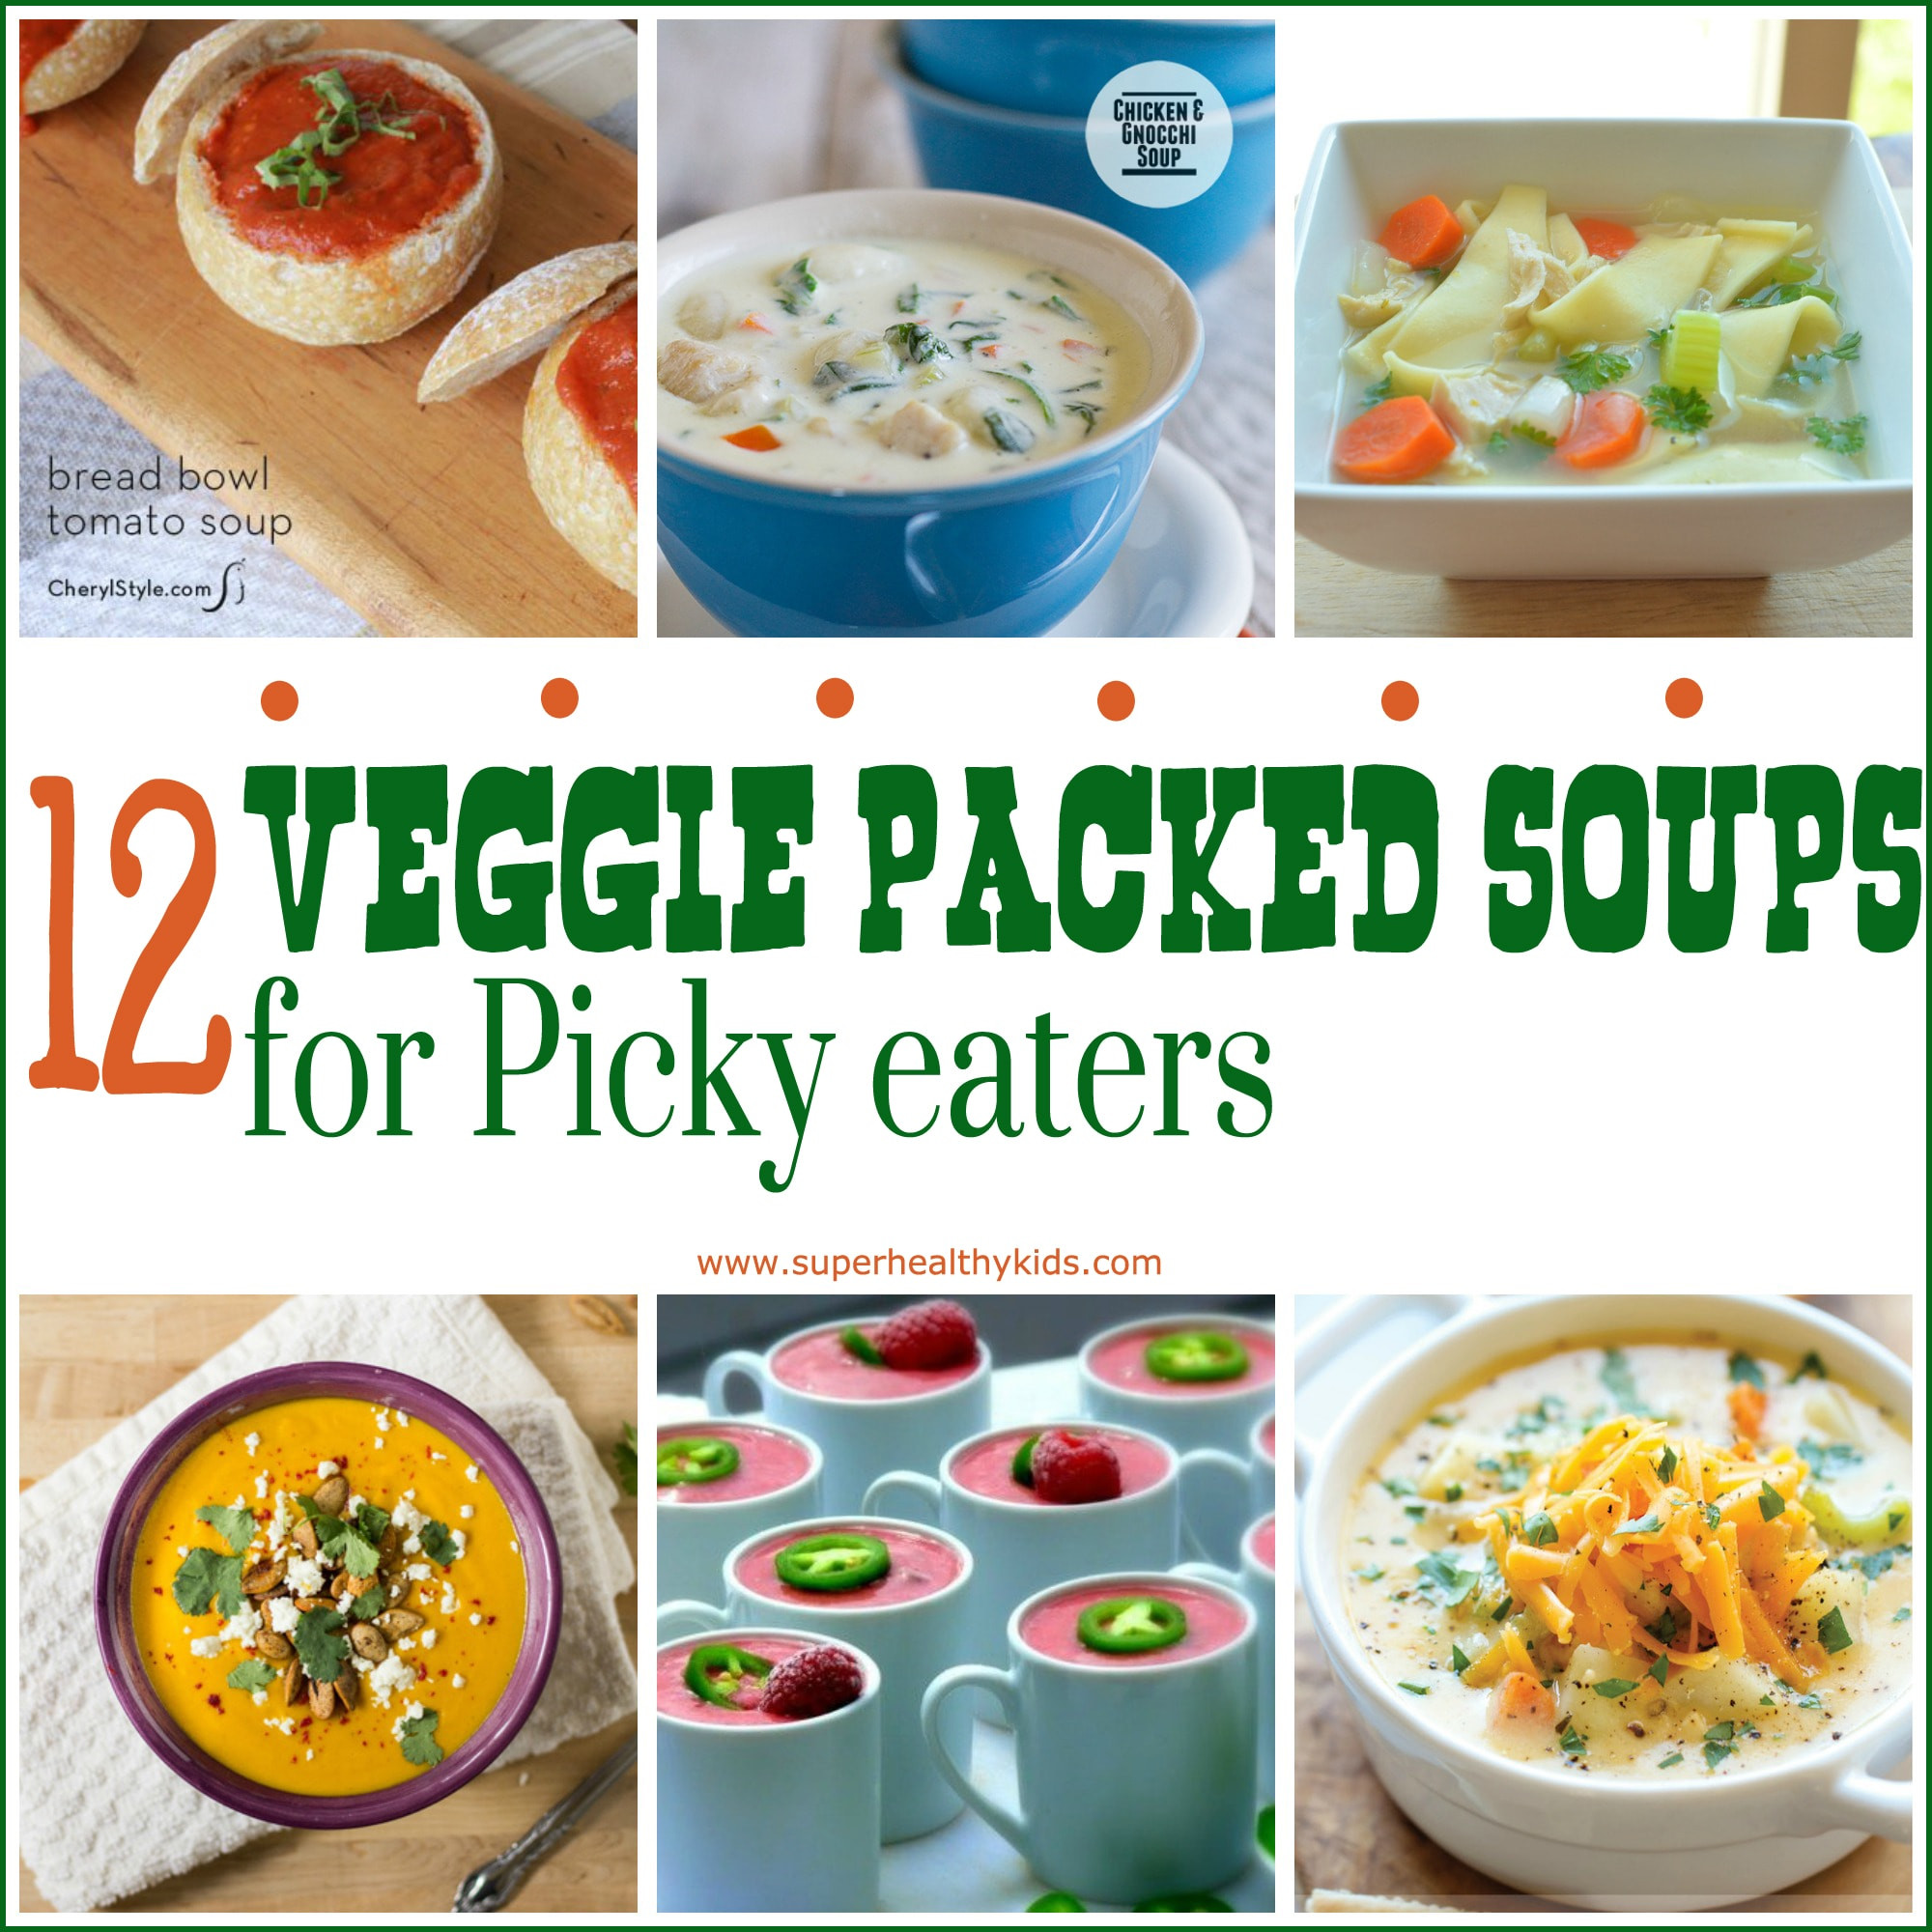 Healthy Dinners For Picky Eaters  12 Veggie Packed Soups for the Picky Eater